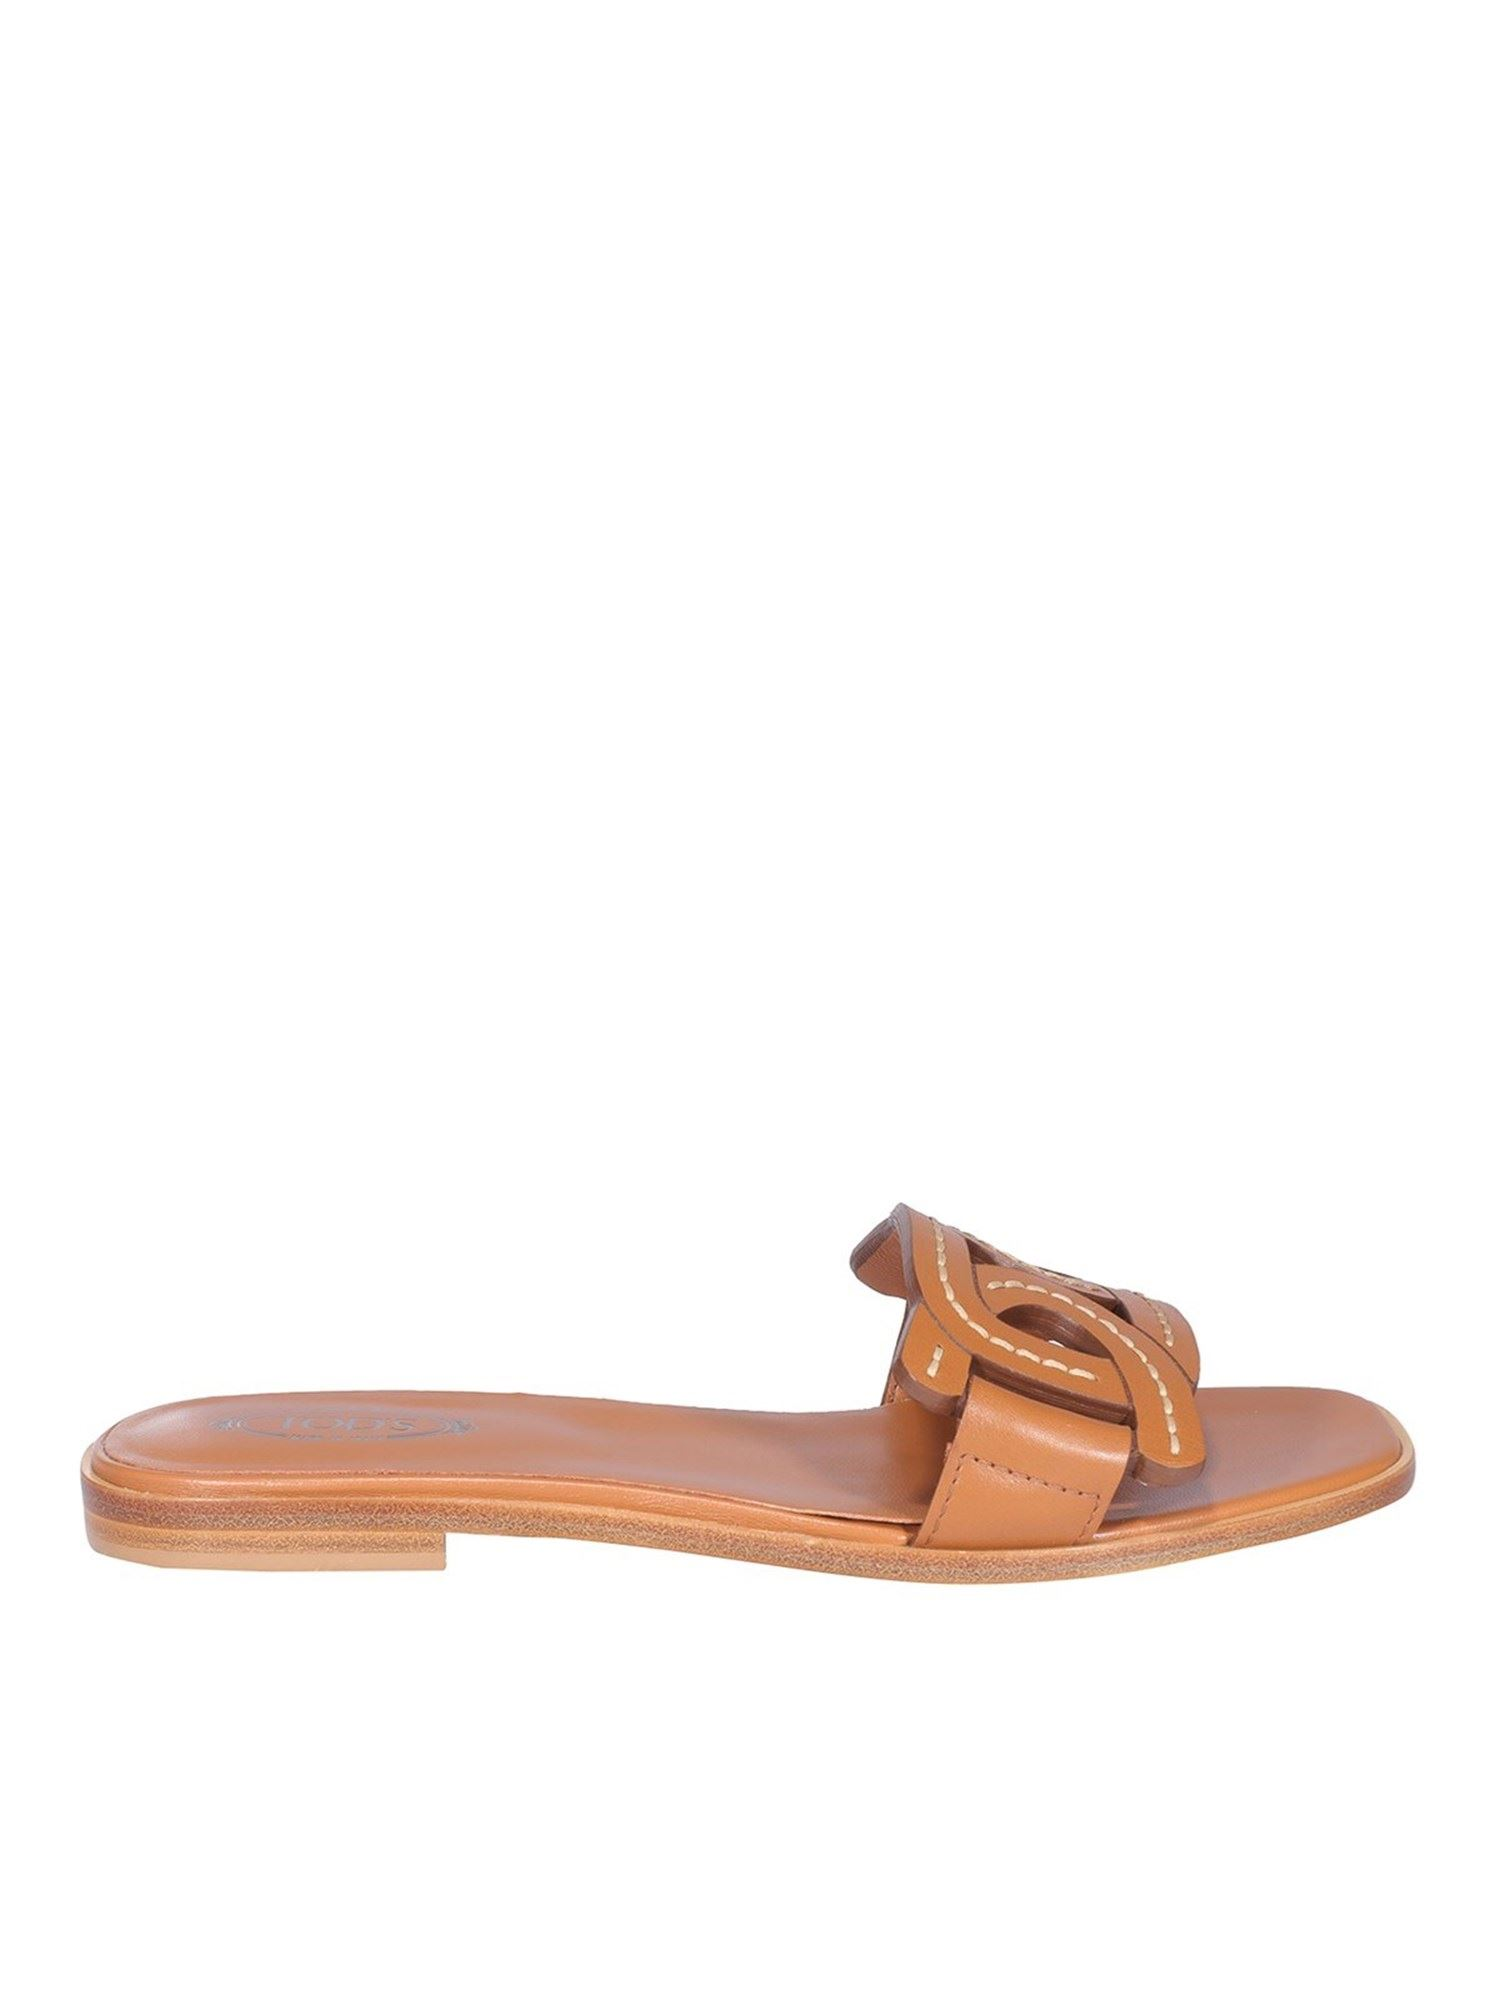 Tod's Leathers LEATHER FLAT MULES IN BROWN